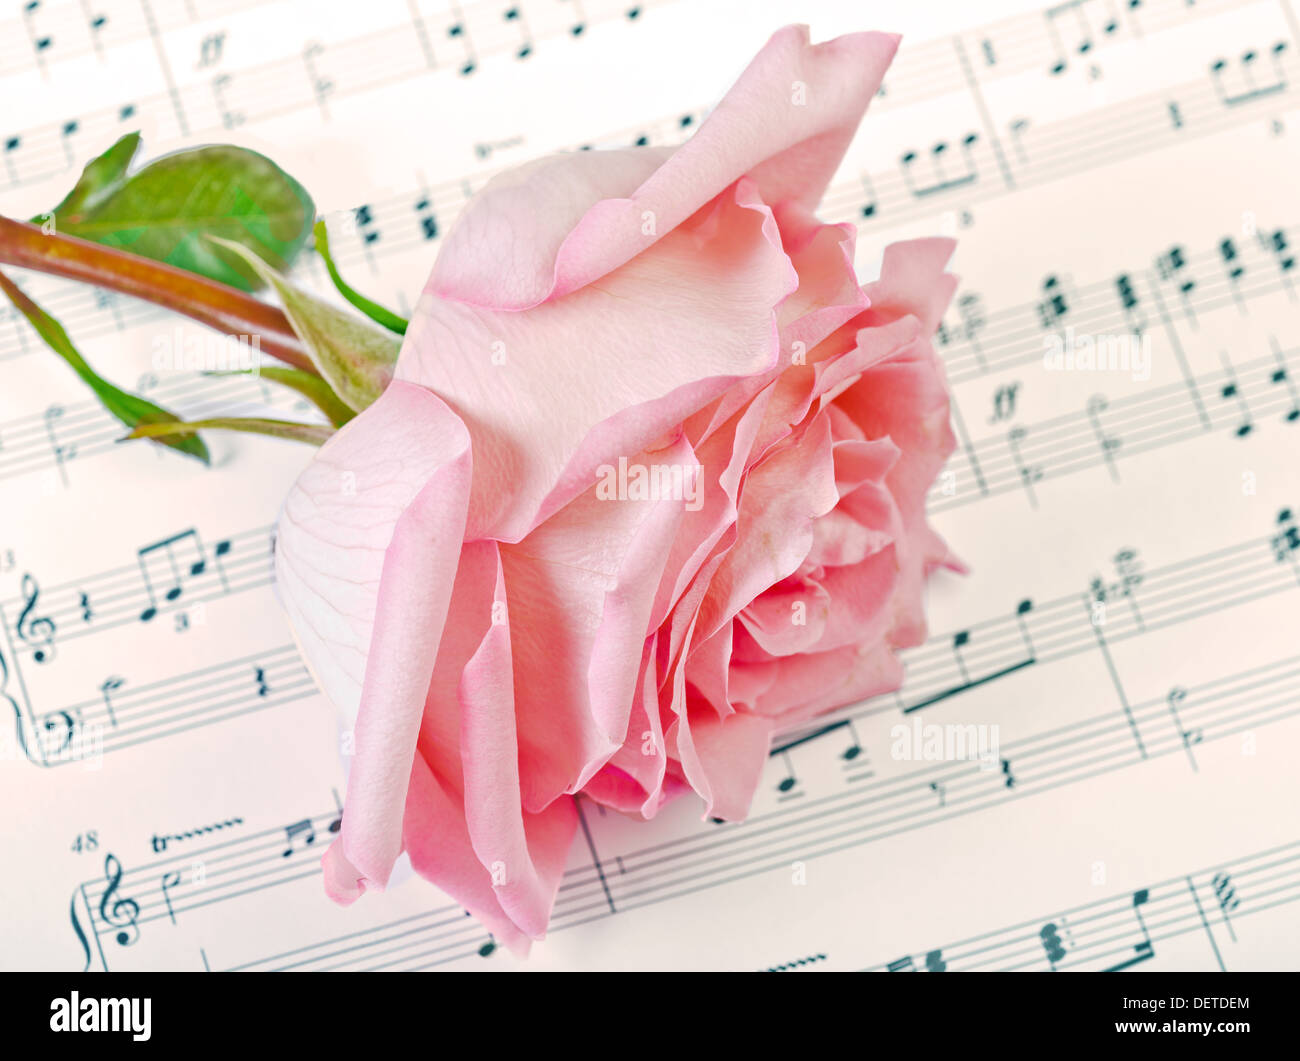 Musical note flower stock photos musical note flower stock images pink rose lays on a musical paper stock image mightylinksfo